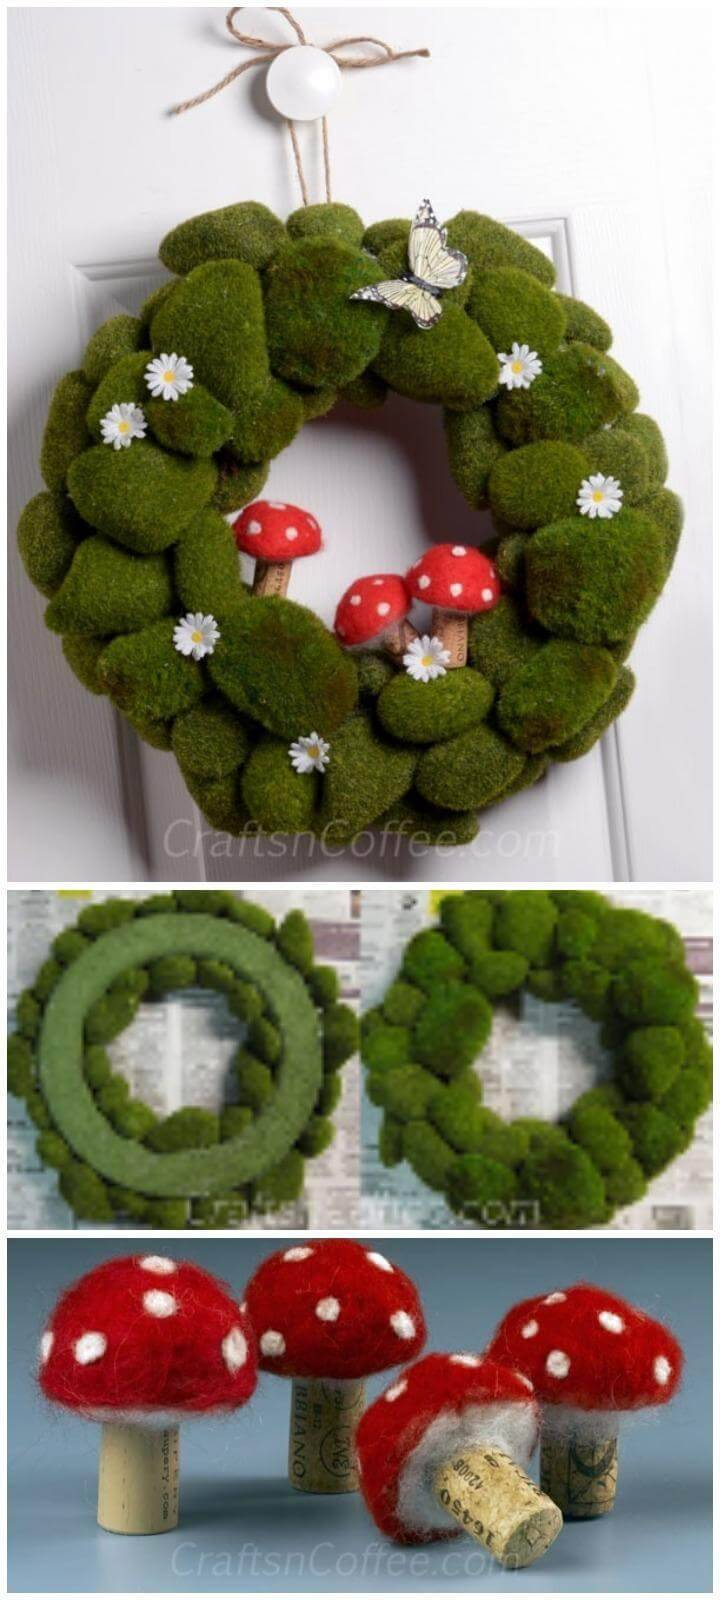 DIY Fetching Moss Rock Wreath with Mushrooms